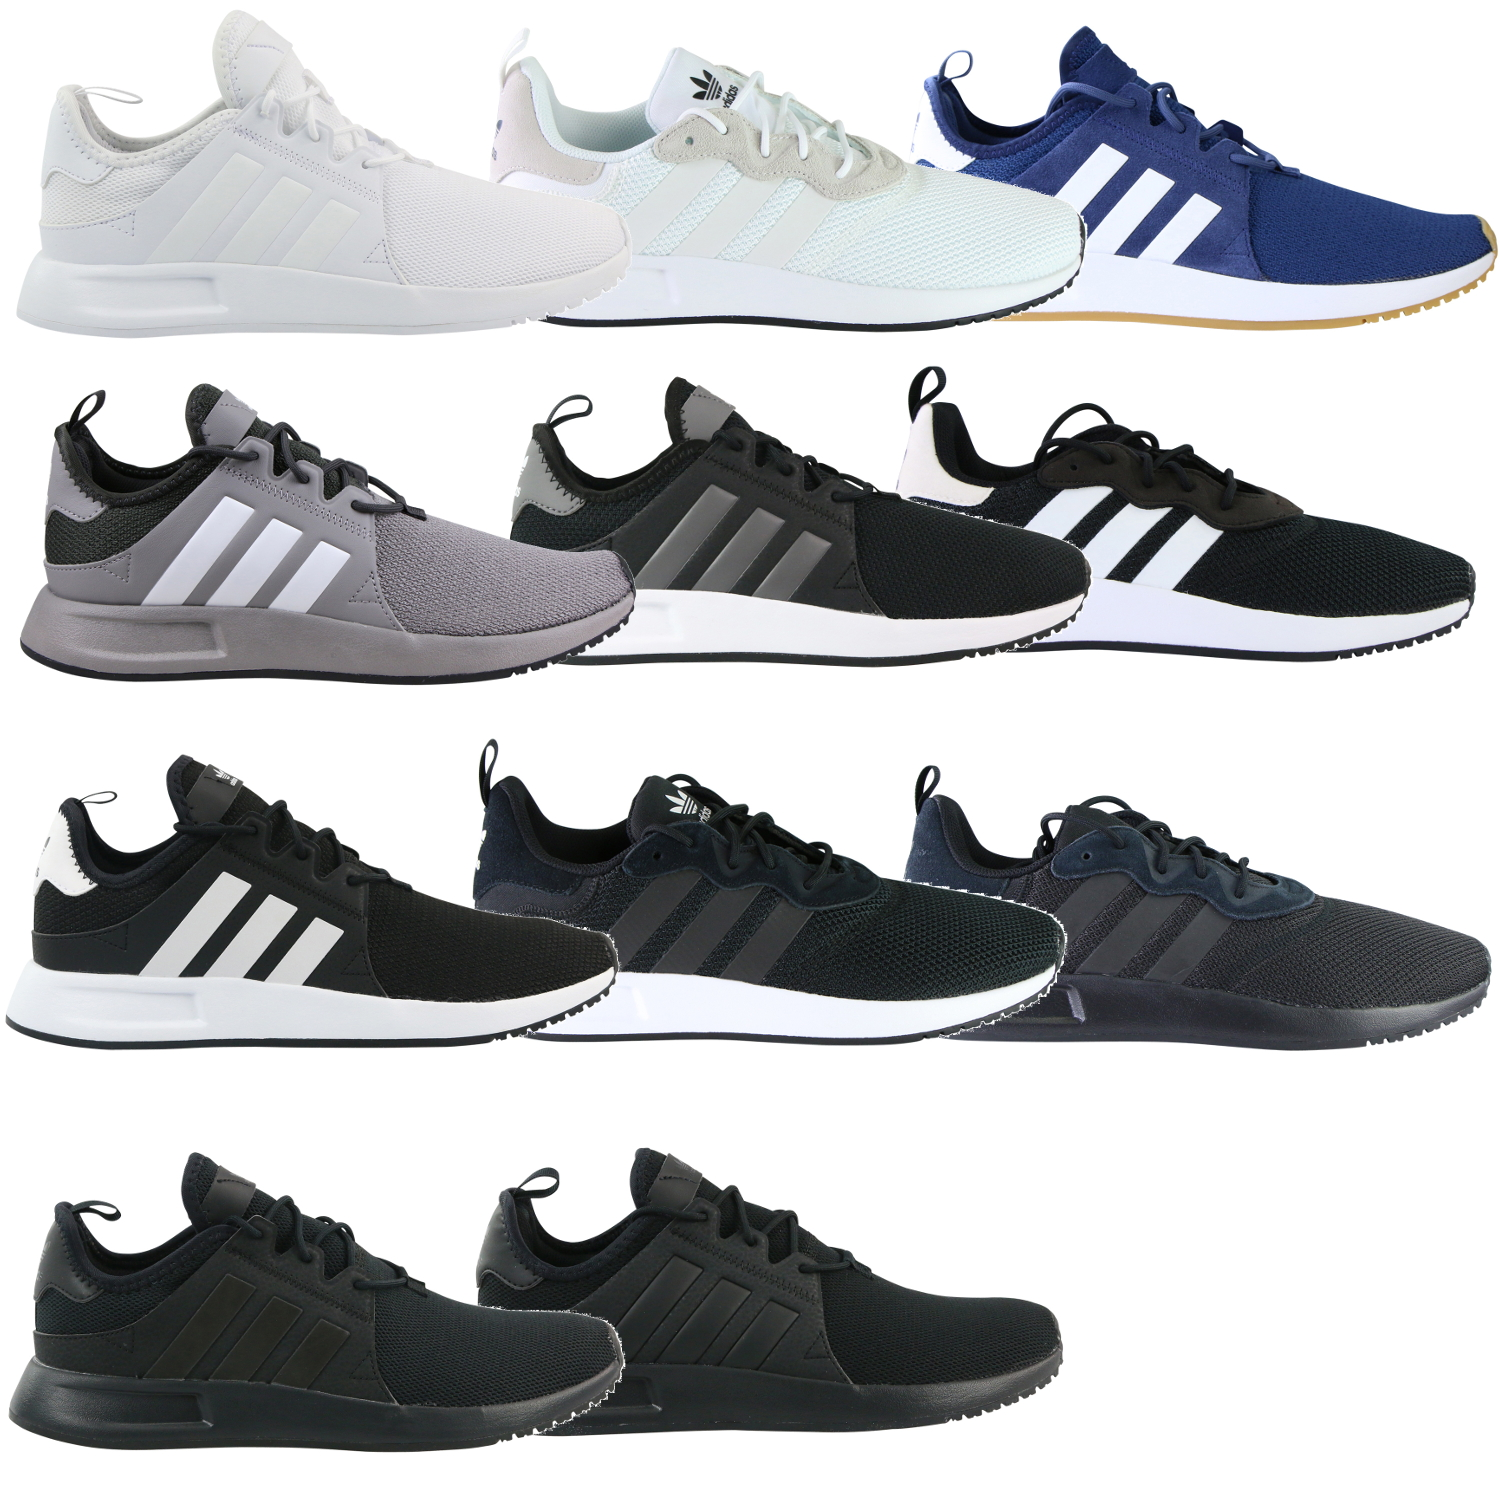 adidas originals x plr schuhe turnschuhe sneaker herren damen ebay. Black Bedroom Furniture Sets. Home Design Ideas